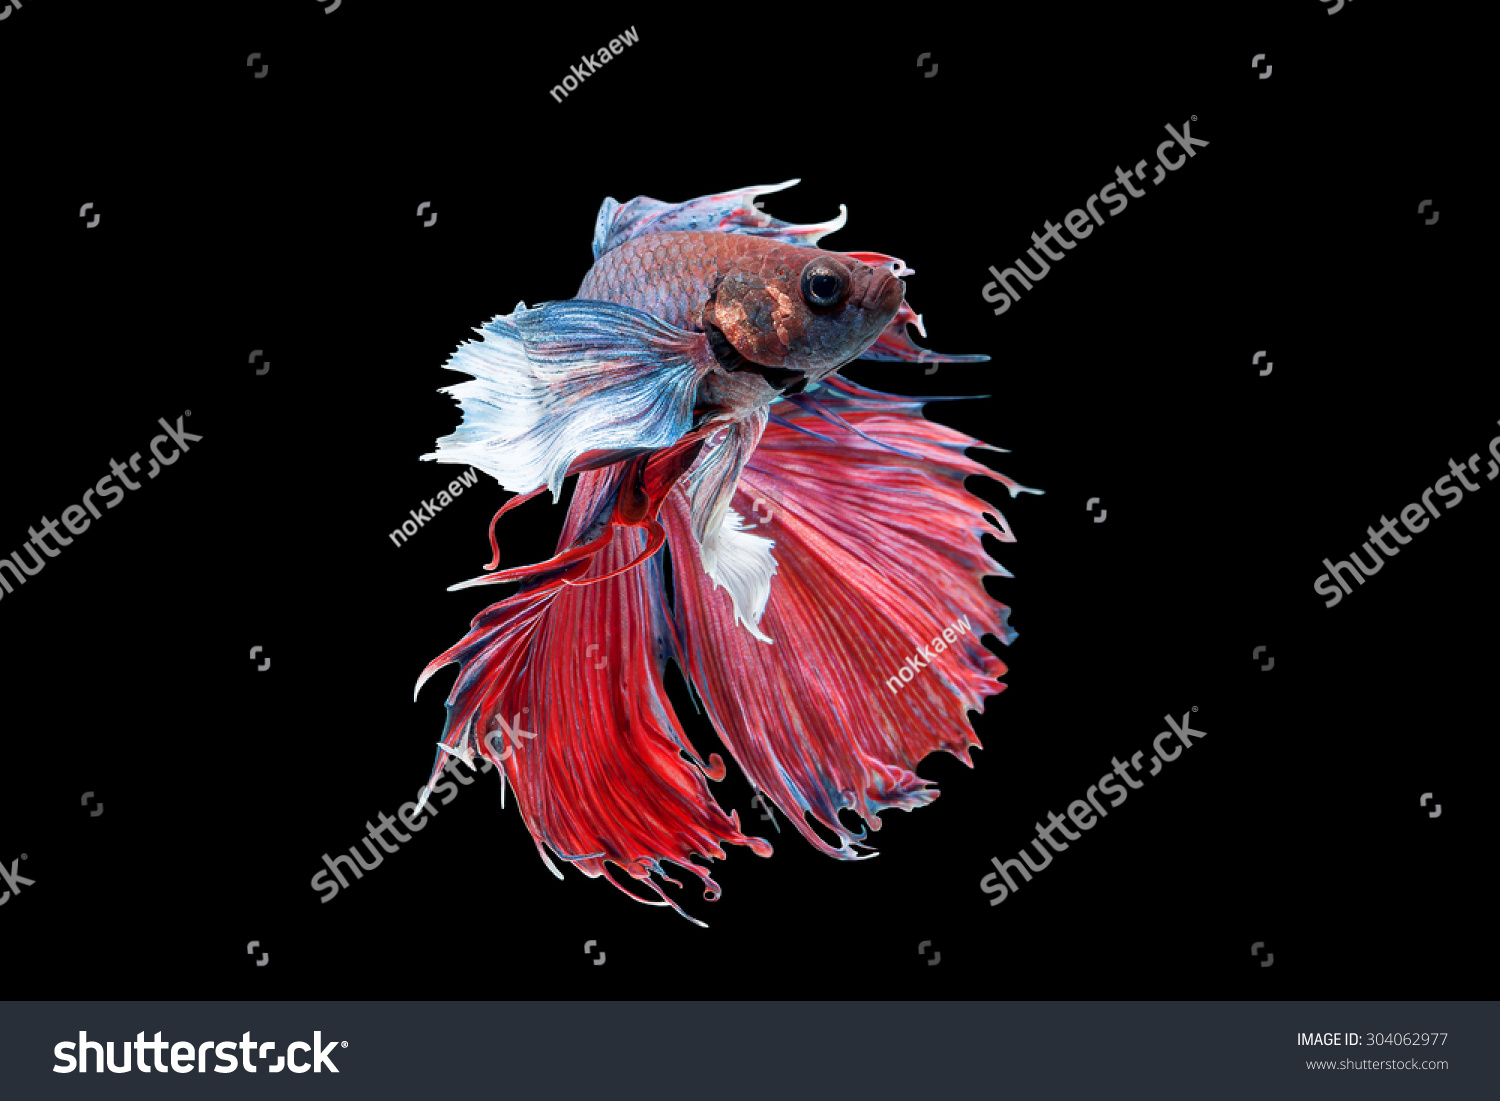 Fancy Halfmoon Betta Capture Moving Moment Stock Photo 304062977 ...